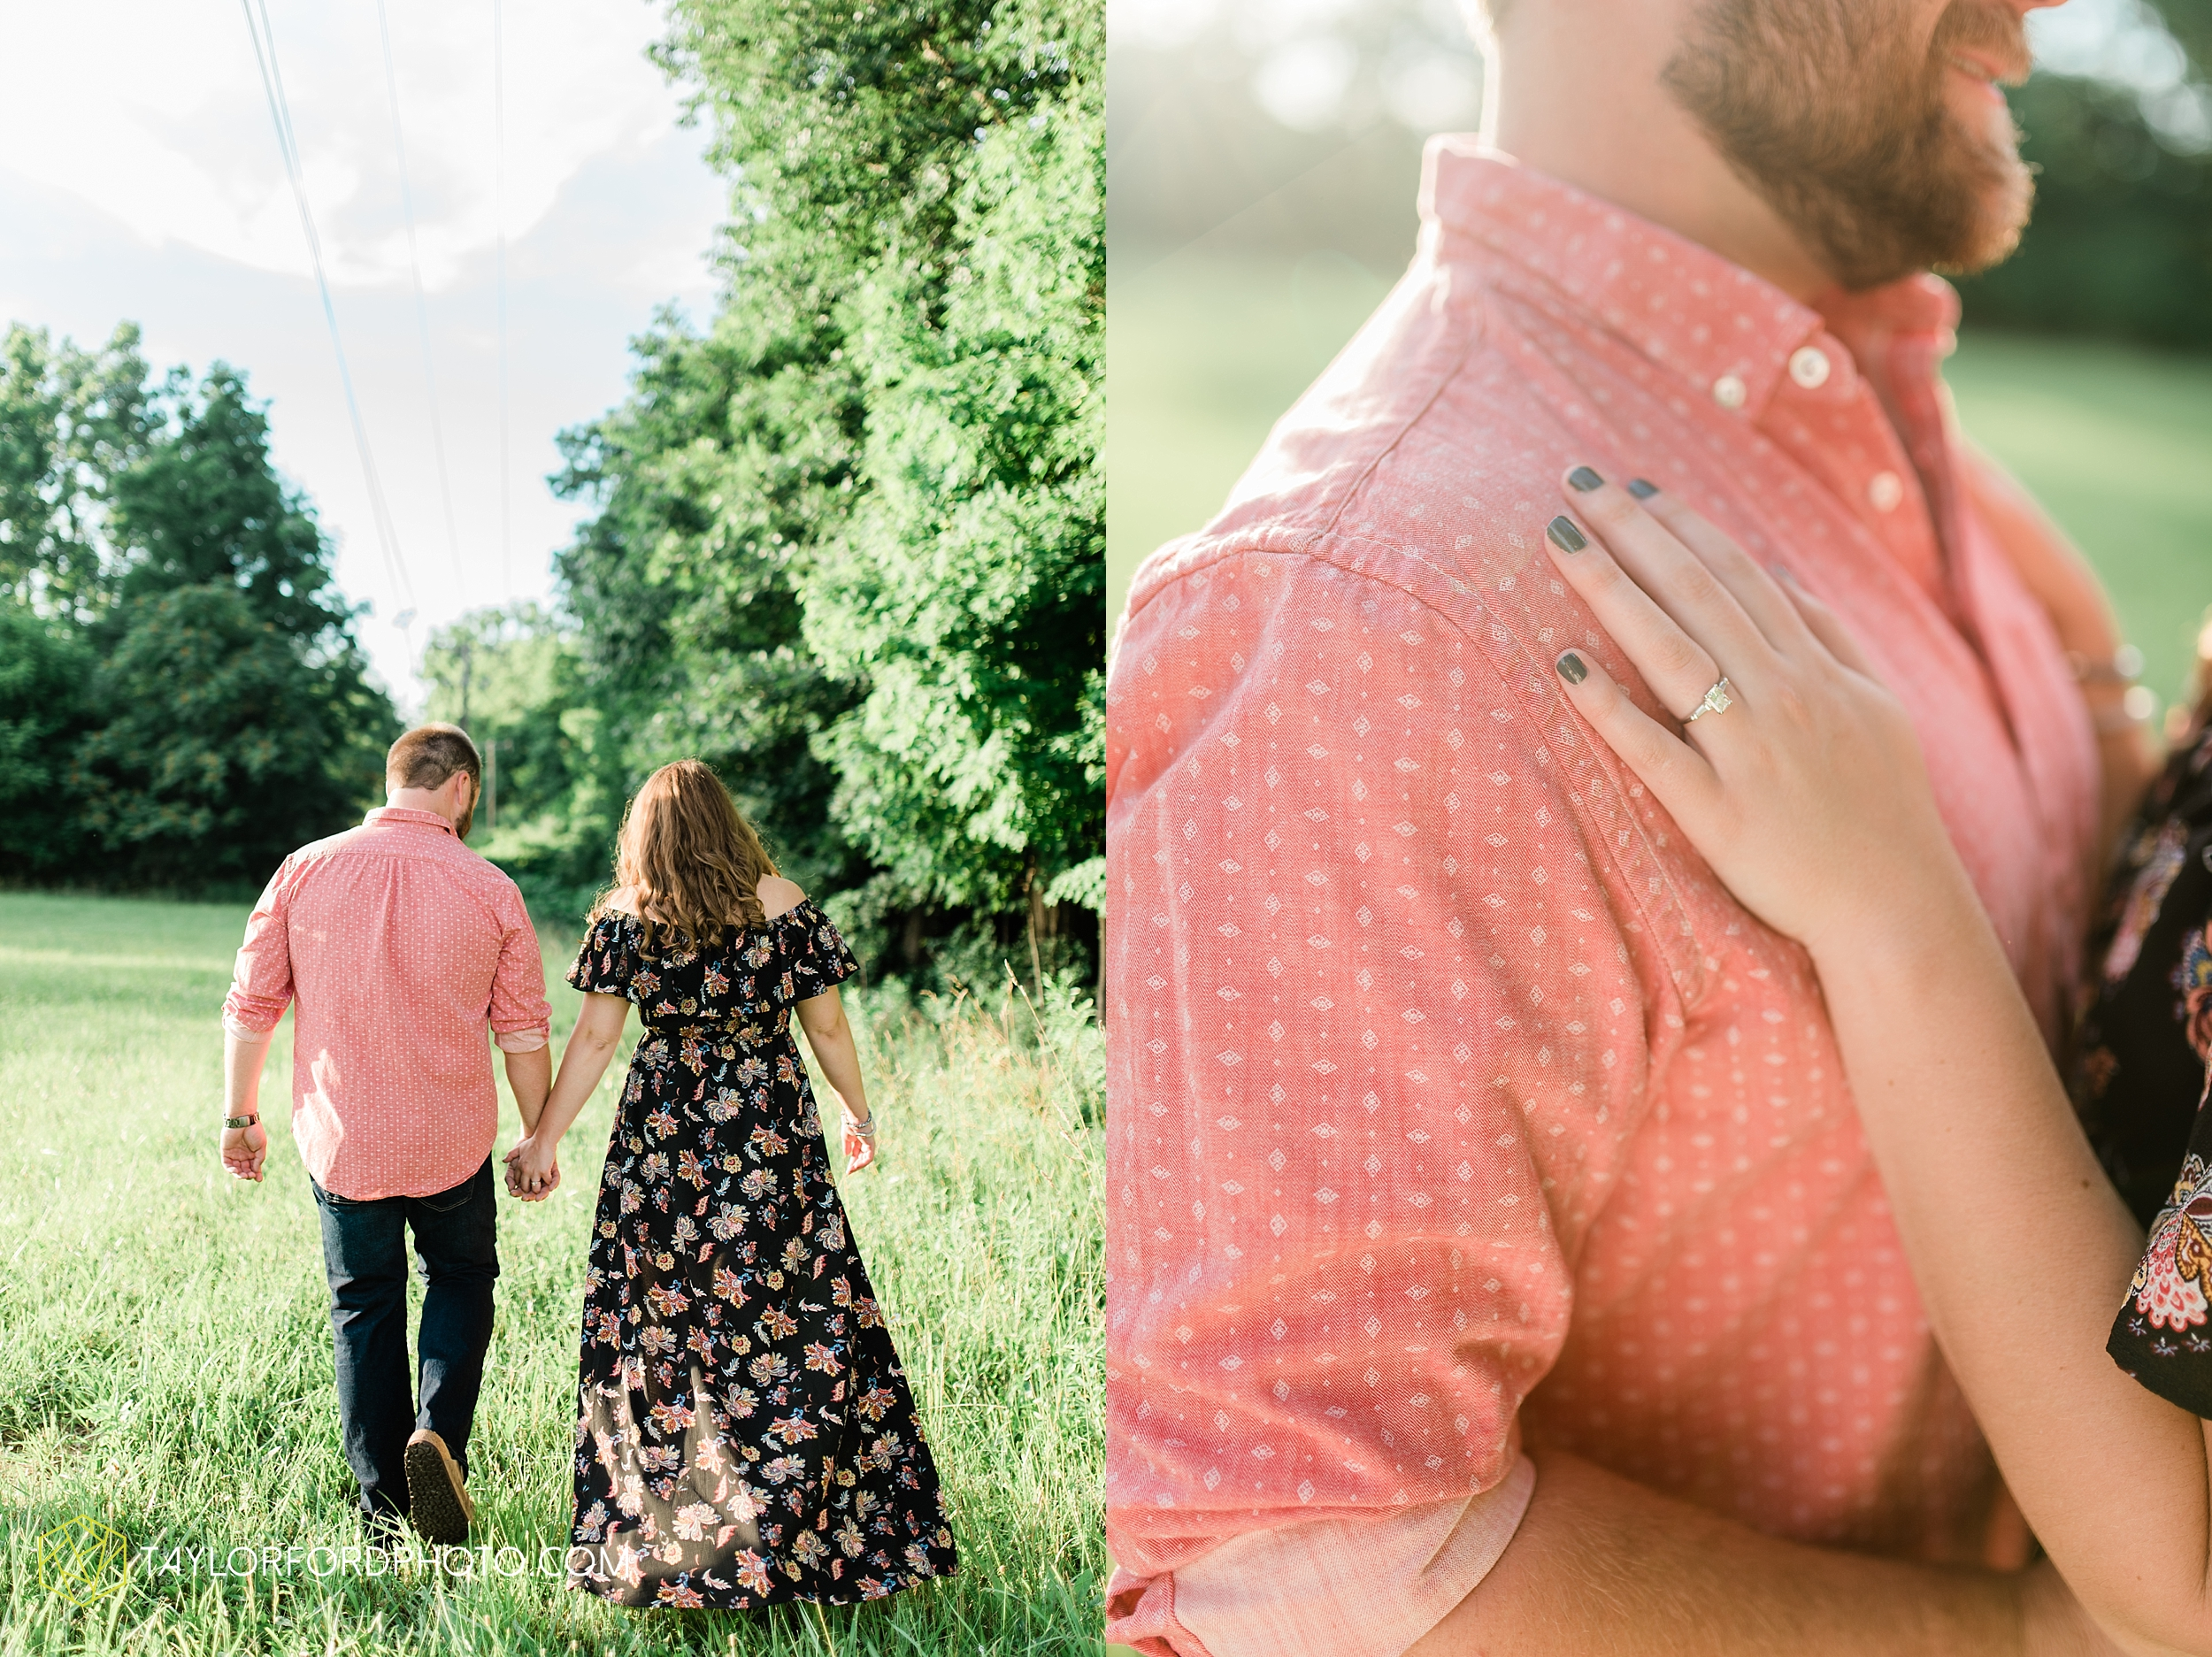 chelsey-jackson-young-downtown-fort-wayne-indiana-the-halls-deck-engagement-wedding-photographer-Taylor-Ford-Photography_8225.jpg